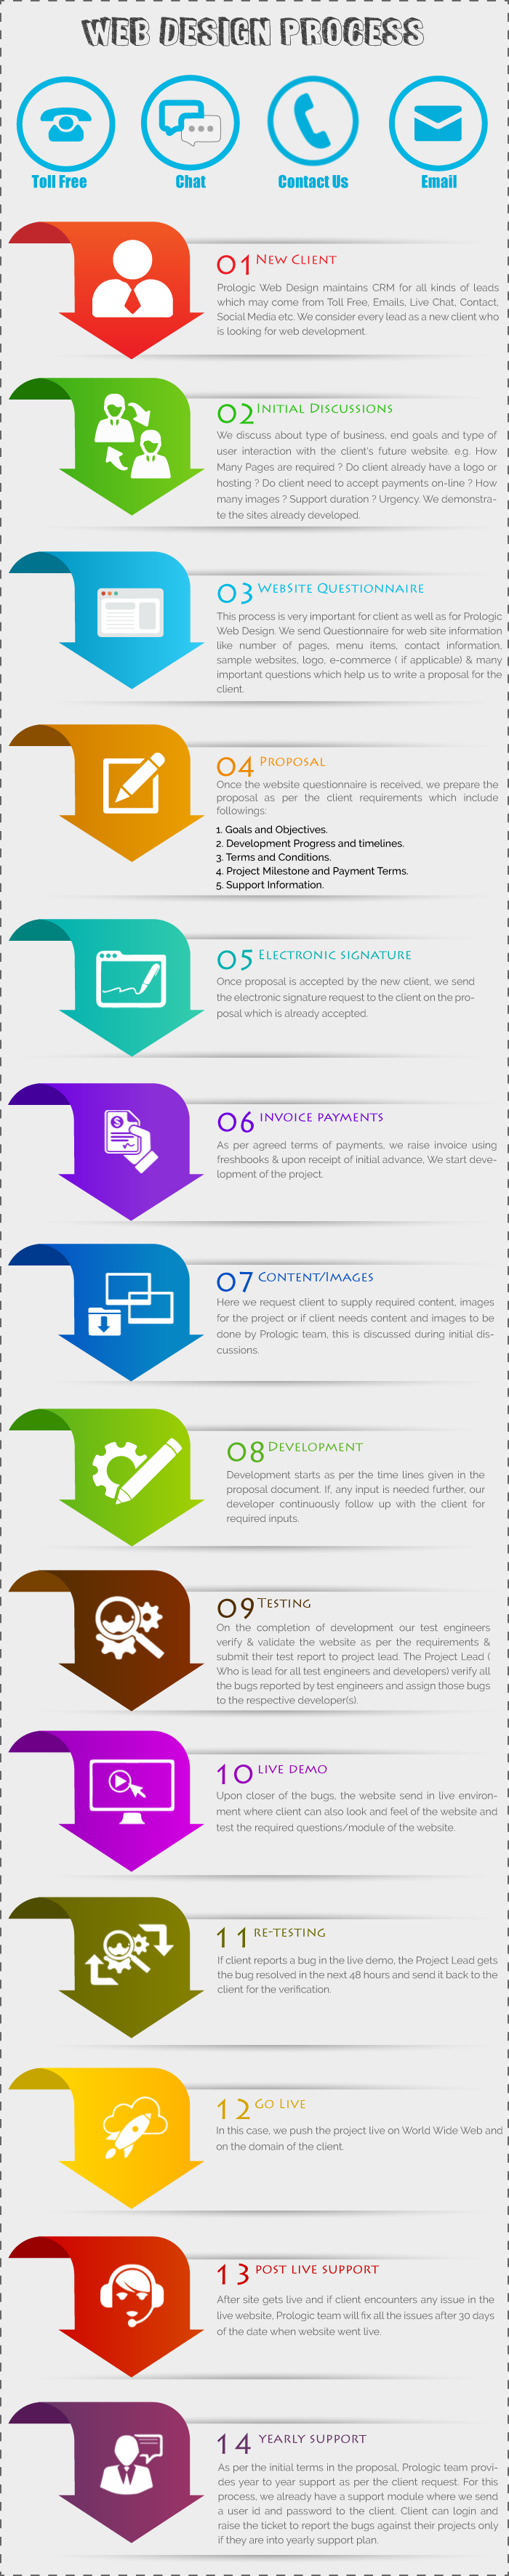 Prologic_CRM_infographic_change-07_05_15